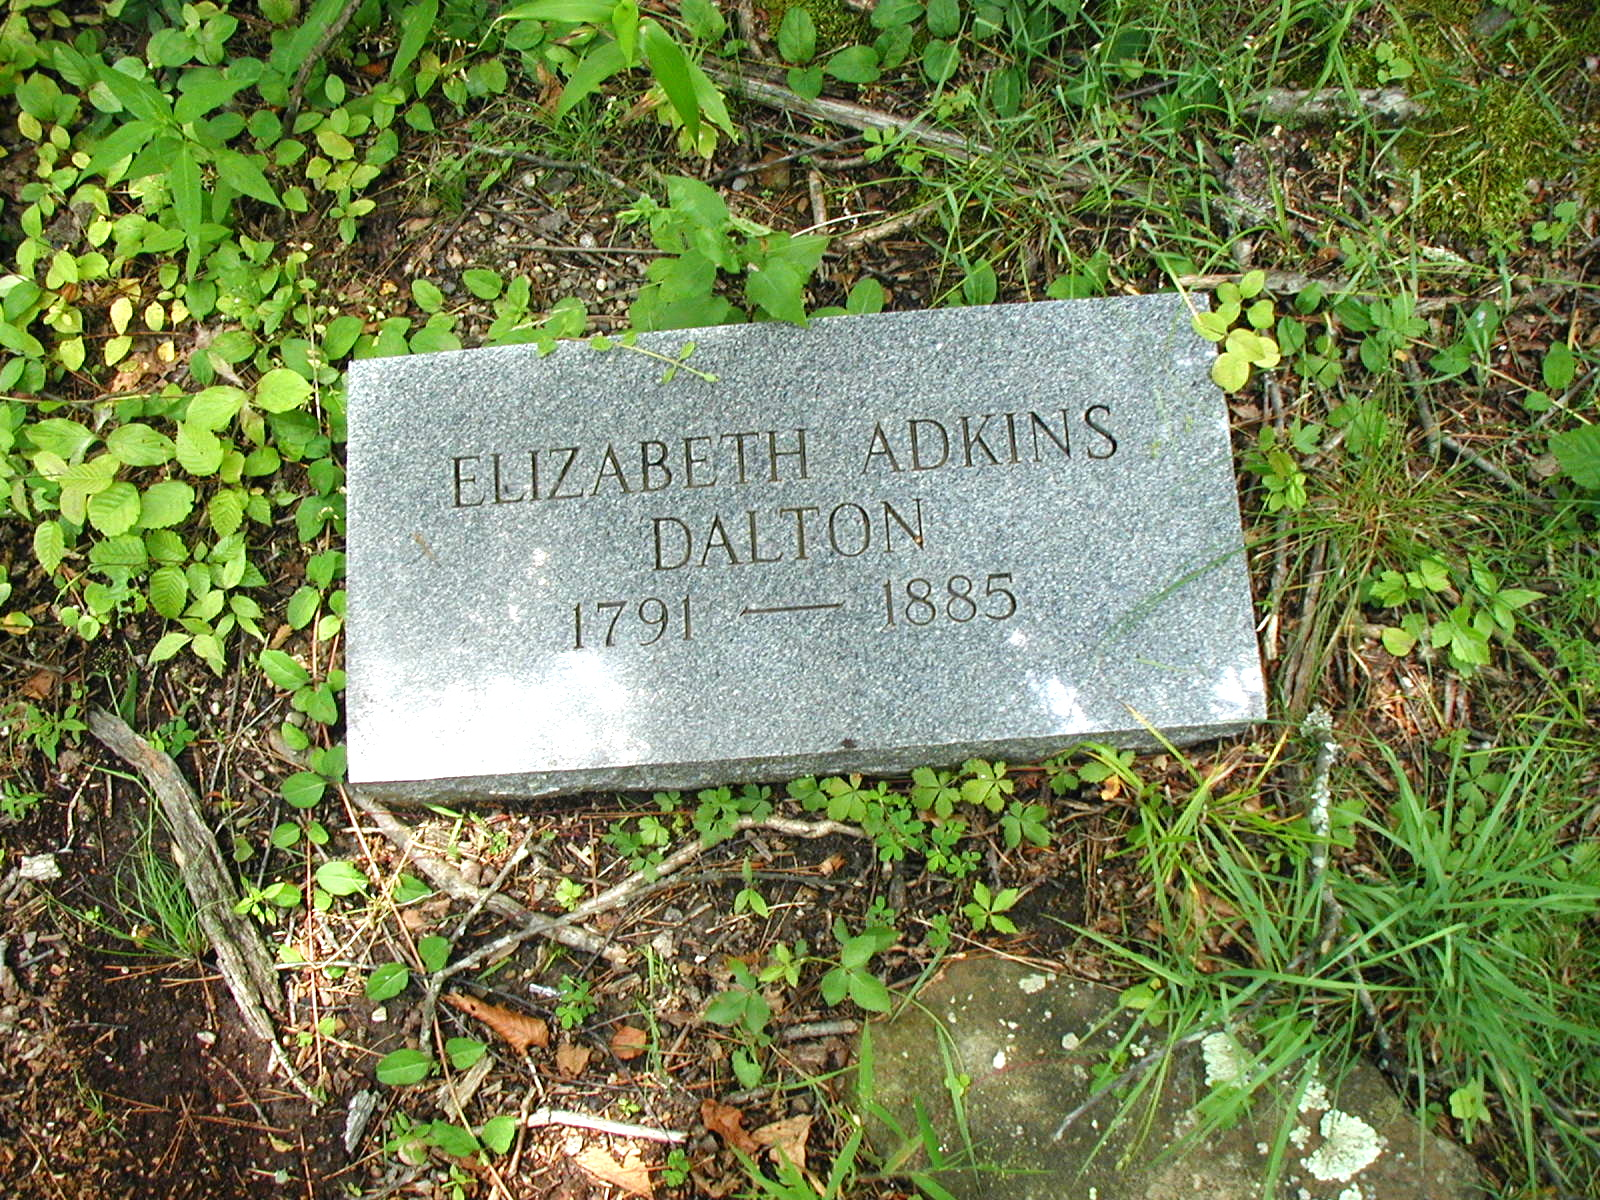 Elizabeth (Adkins) Adkins grave in the Adkins Family Cemetery at Harts, WV. Photo by Brandon Kirk.